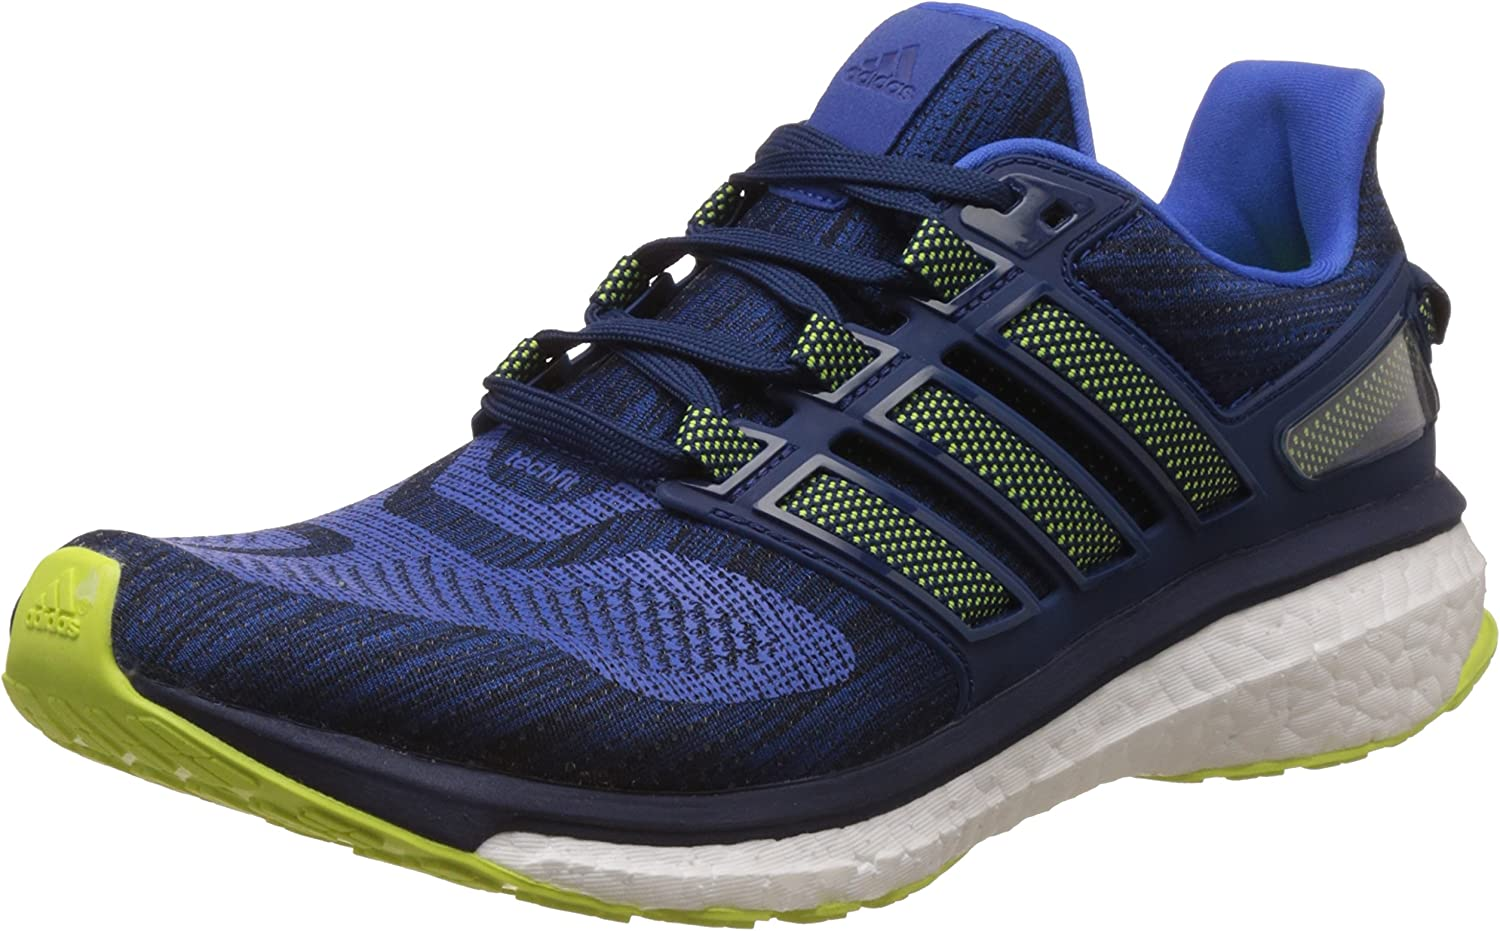 adidas Energy Boost 3, Zapatillas de Running Hombre, Azul (Blue/Solar Yellow/Mystery Blue), 44: Amazon.es: Zapatos y complementos